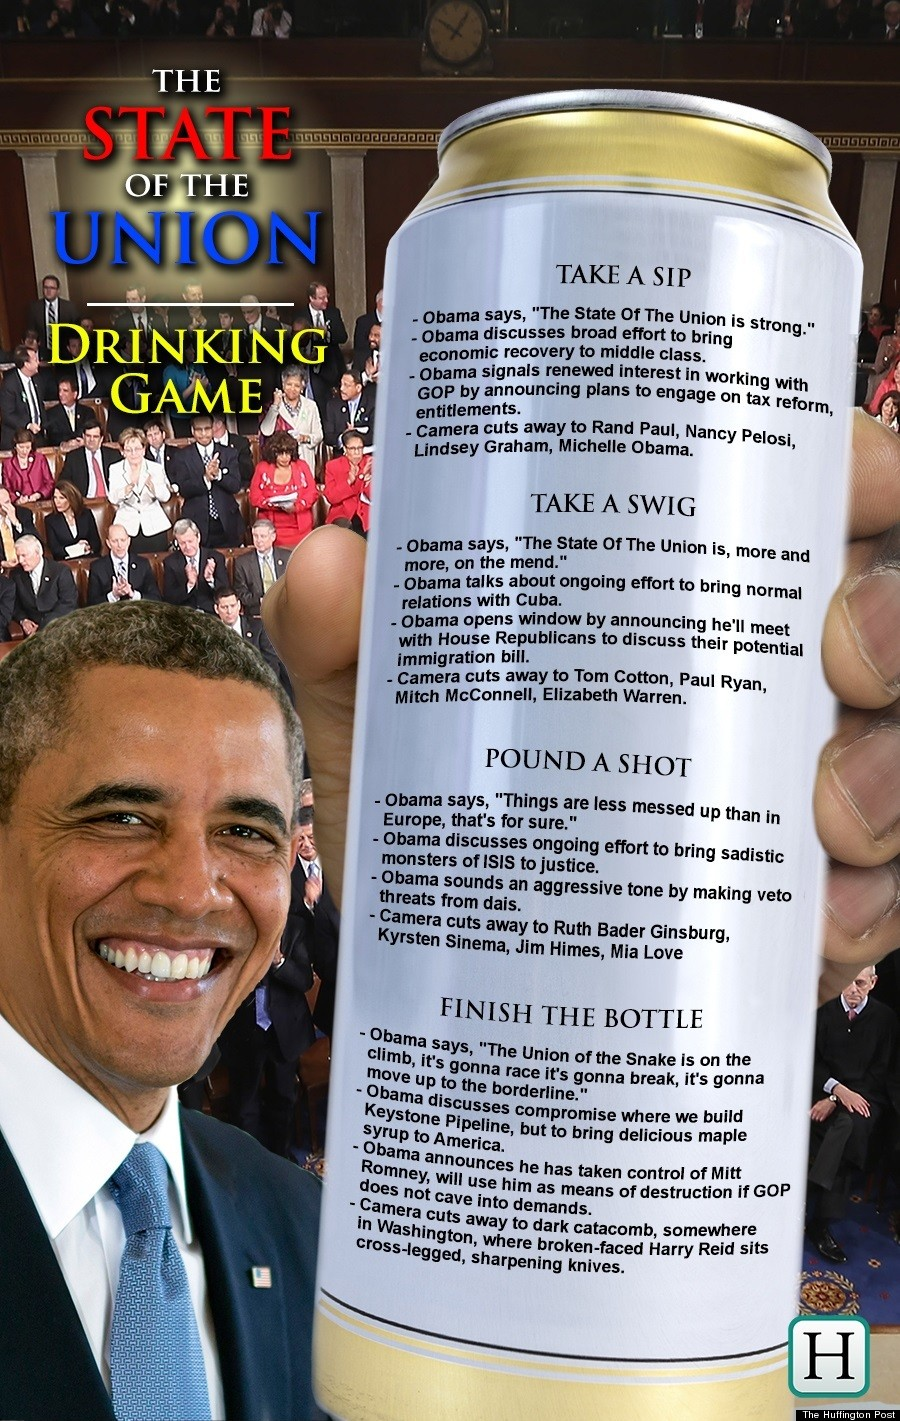 huffington post sotu drinking game revised